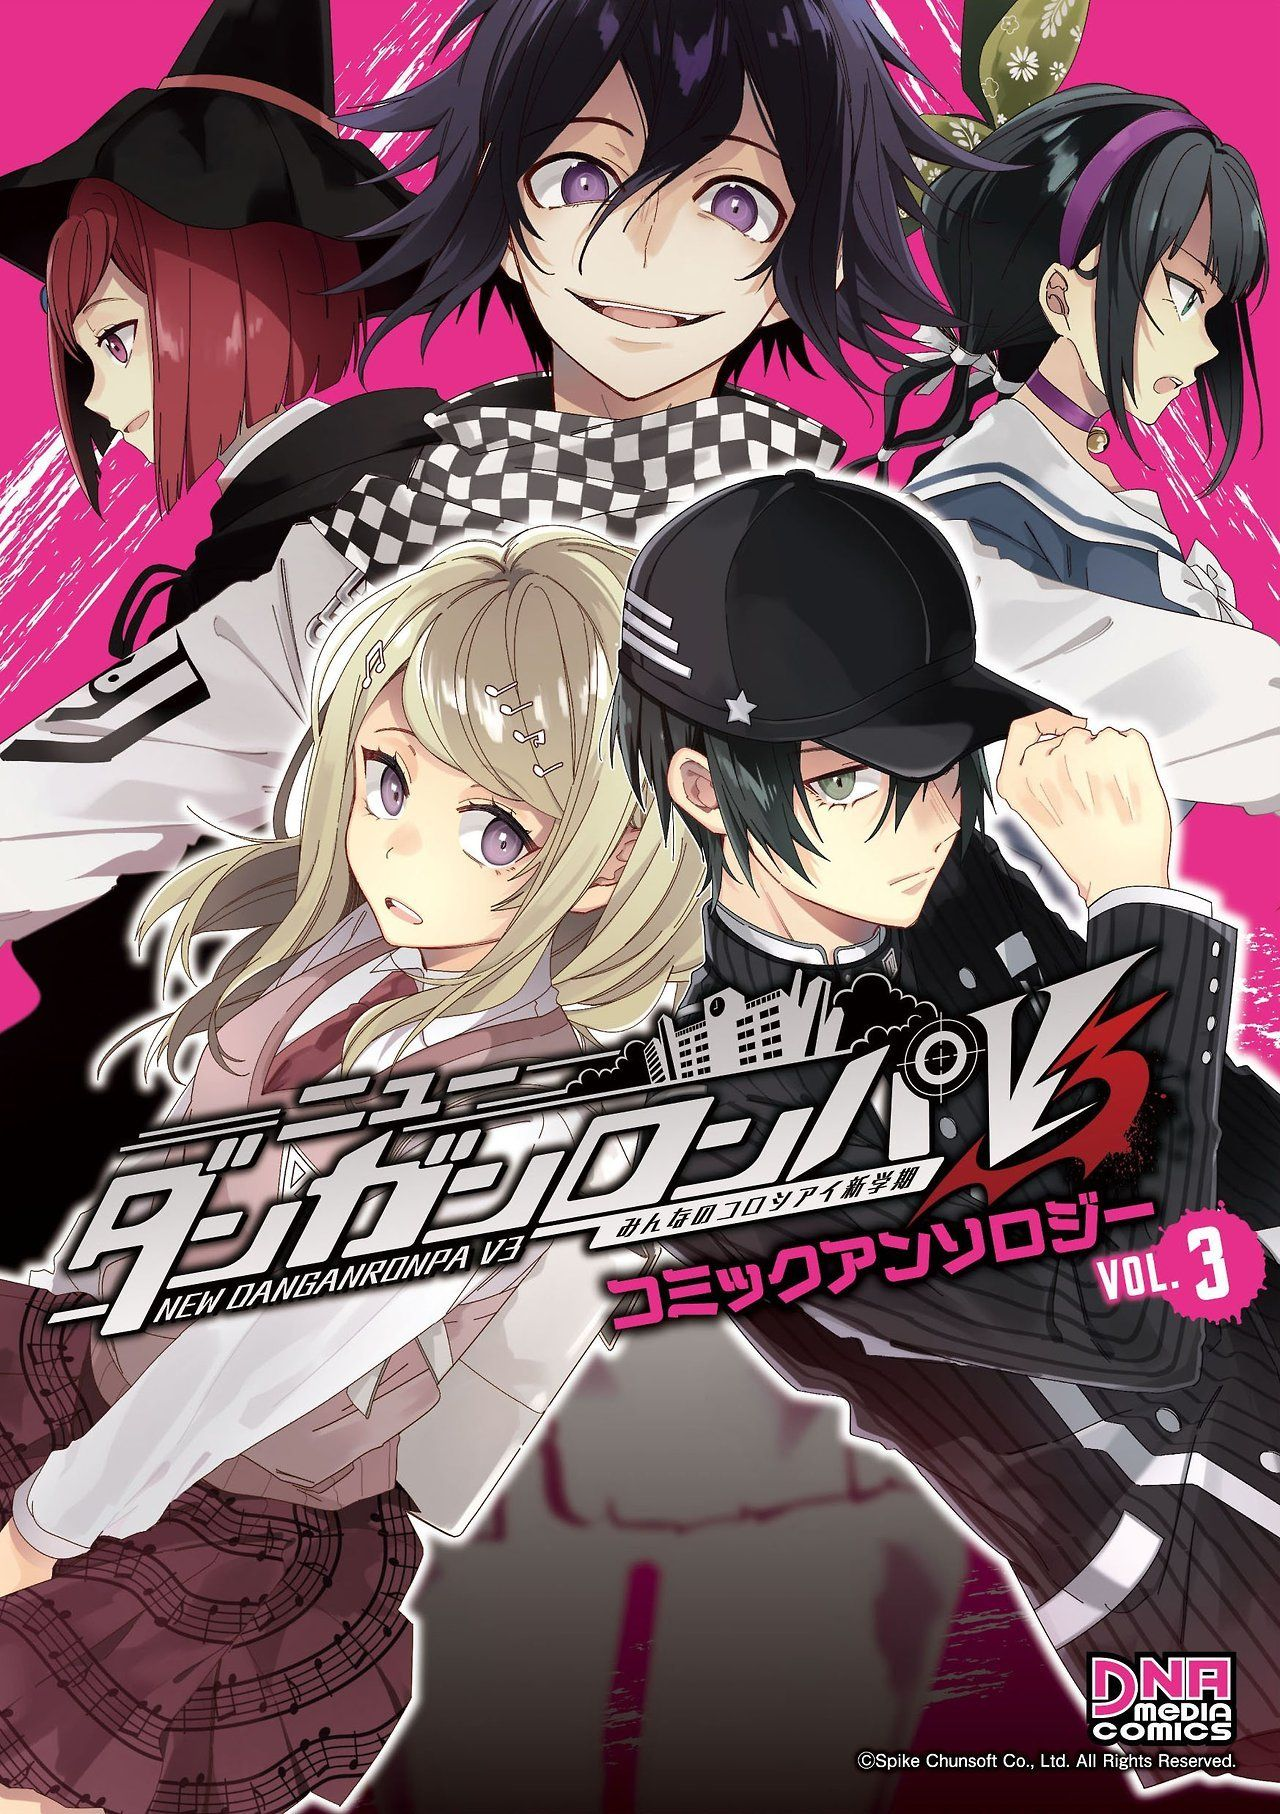 Cover for the 3rd New Danganronpa V3 Comic Anthology which